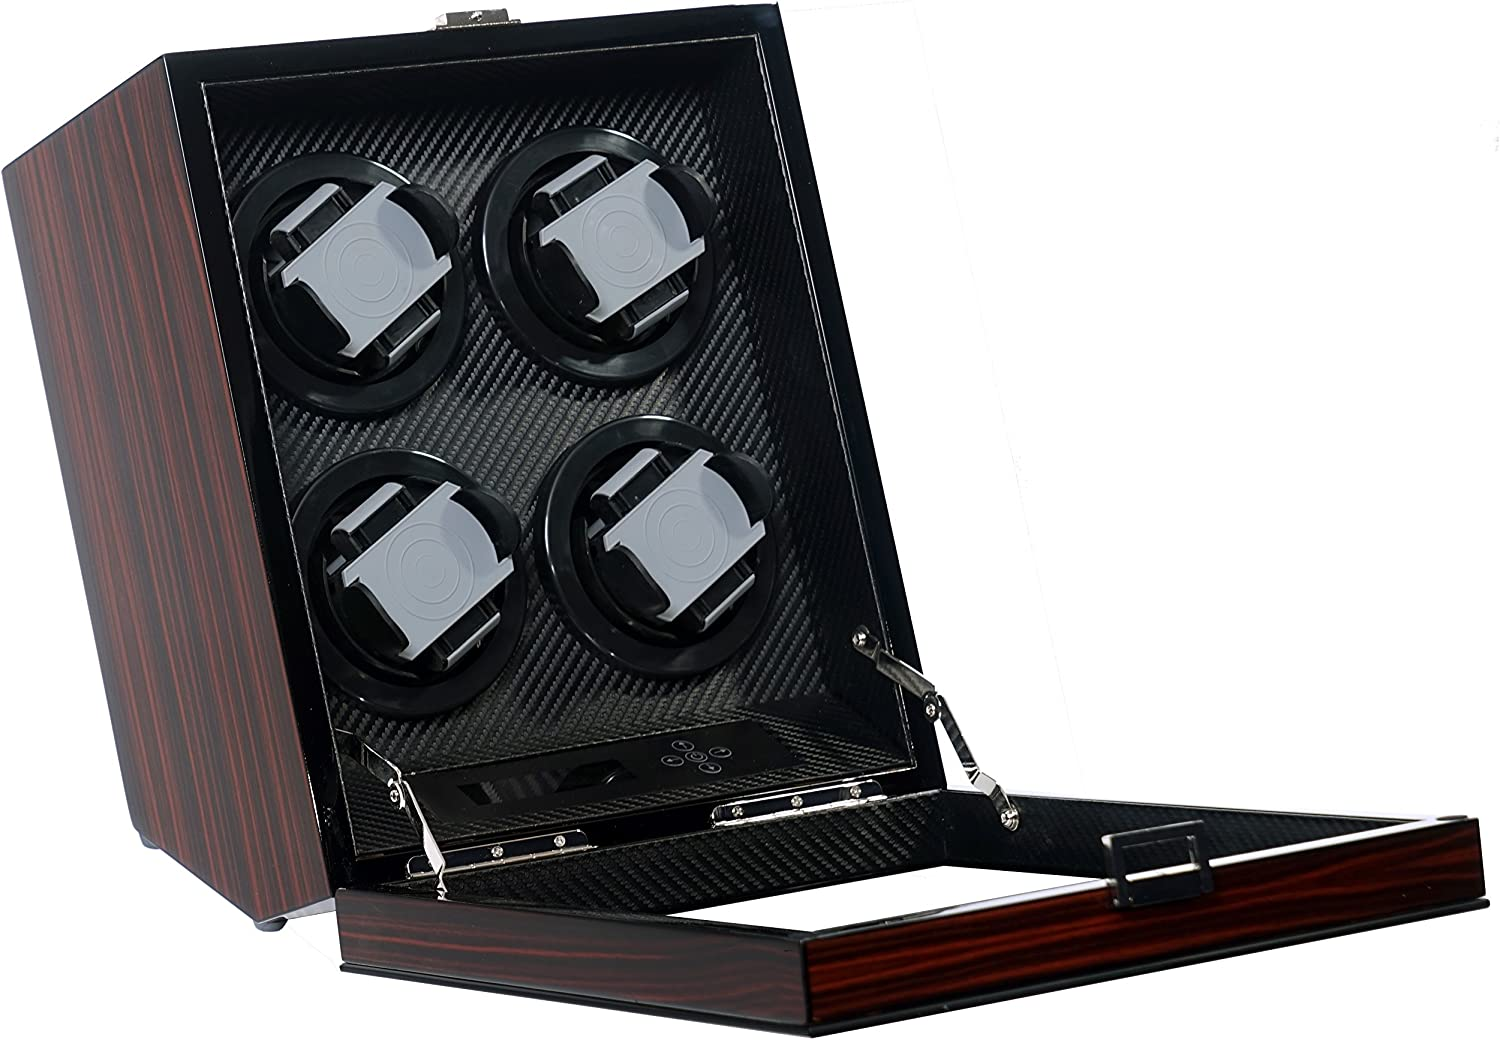 Four half Watch Winder w Special price for a limited time Dispaly LCD